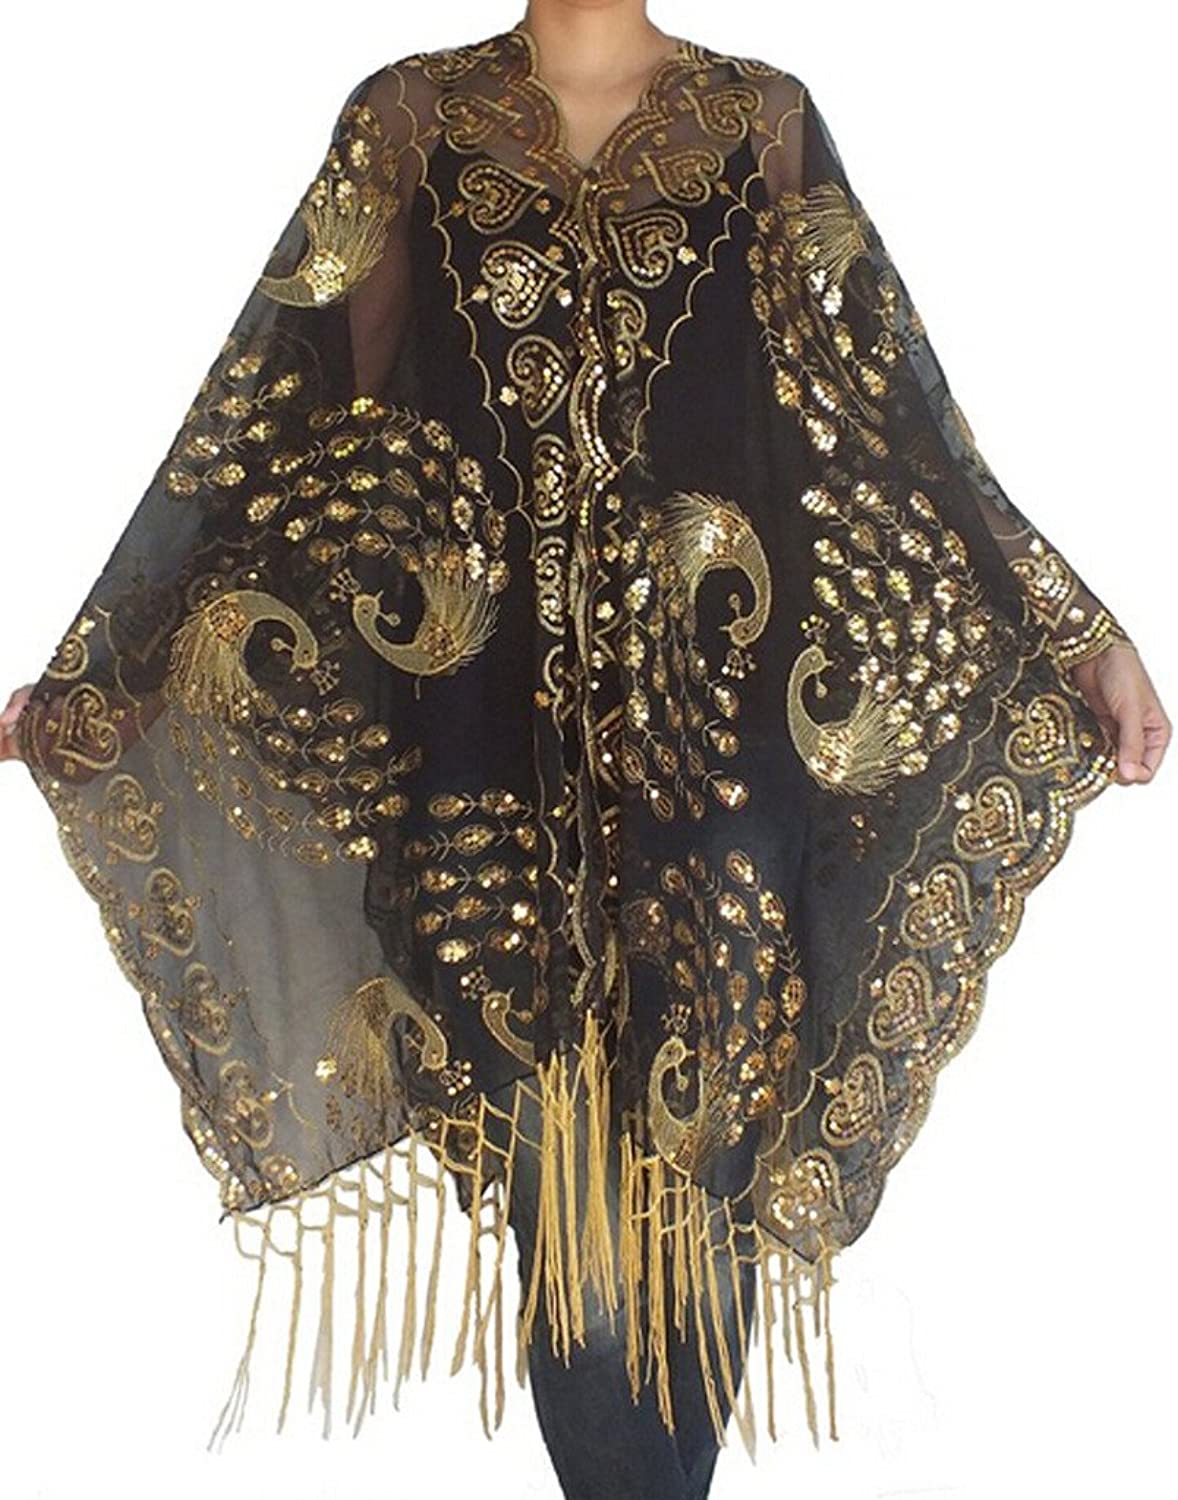 Vintage Scarves- New in the 1920s to 1960s Styles  Peacock Phoenix Embroidery Sequins Wedding Scarf Shawls $19.99 AT vintagedancer.com